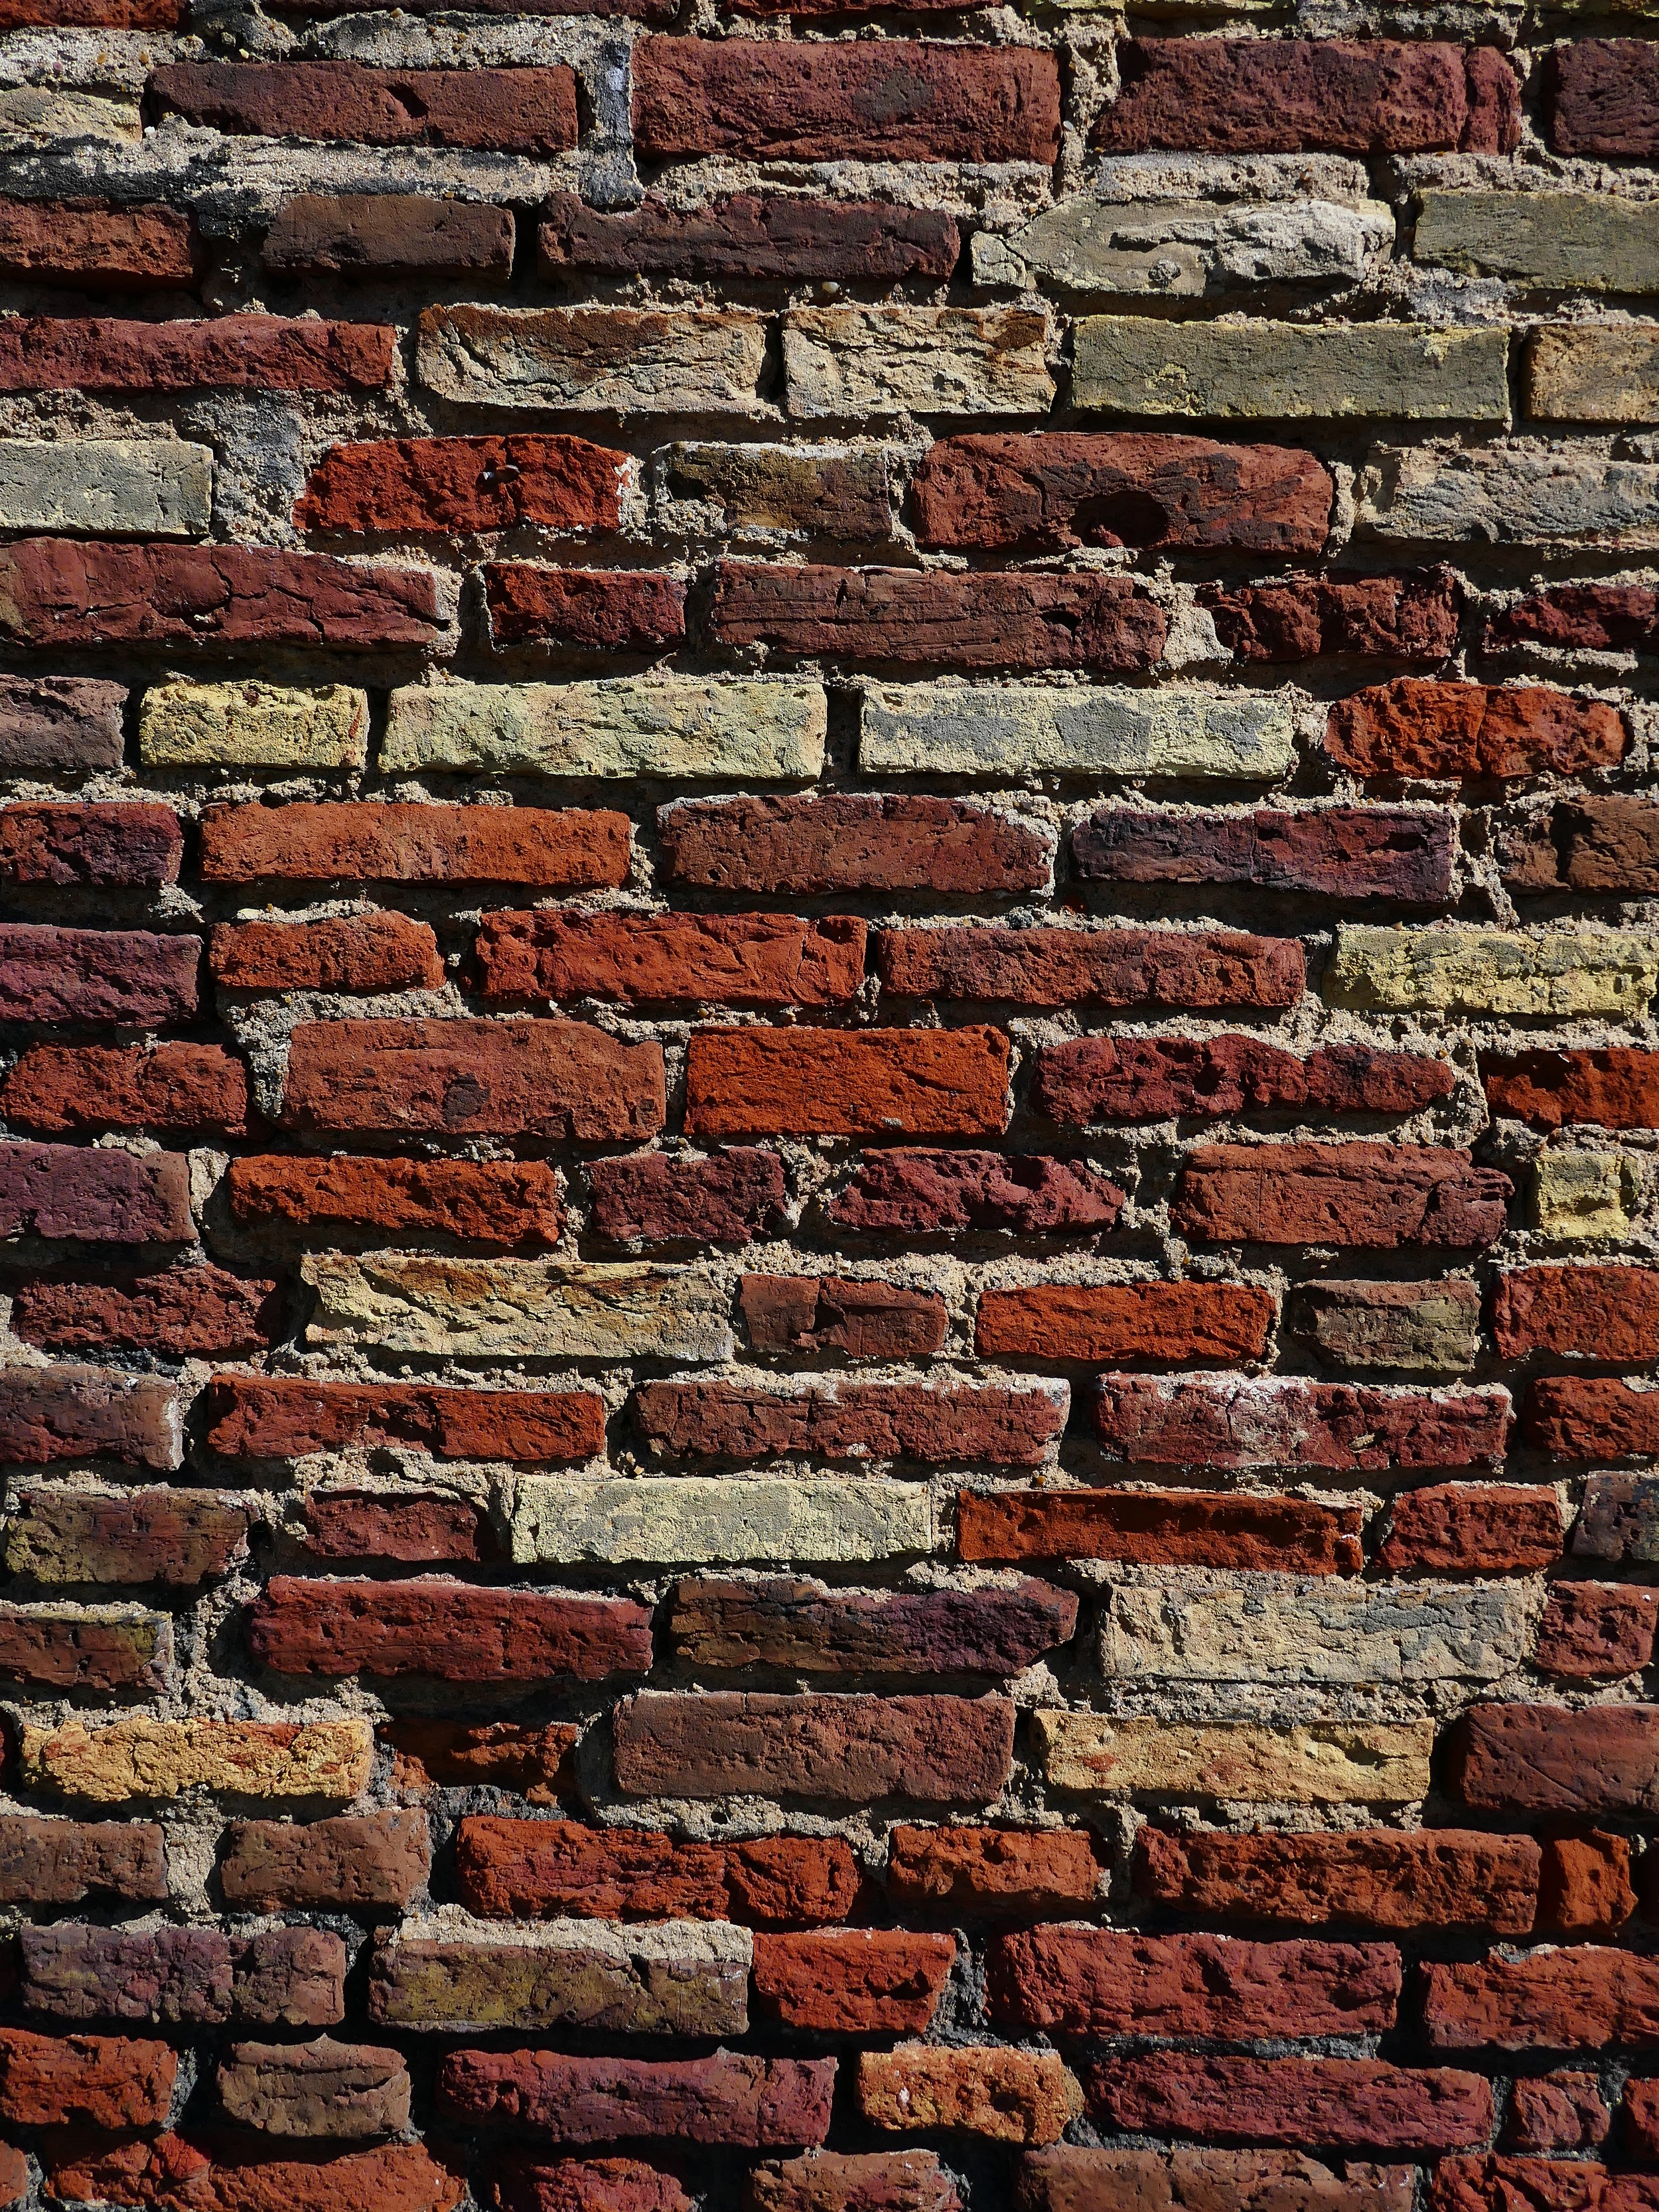 Bricks:  clay, formed into rectangular shapes and then baked in a kiln to make the material hard and durable.